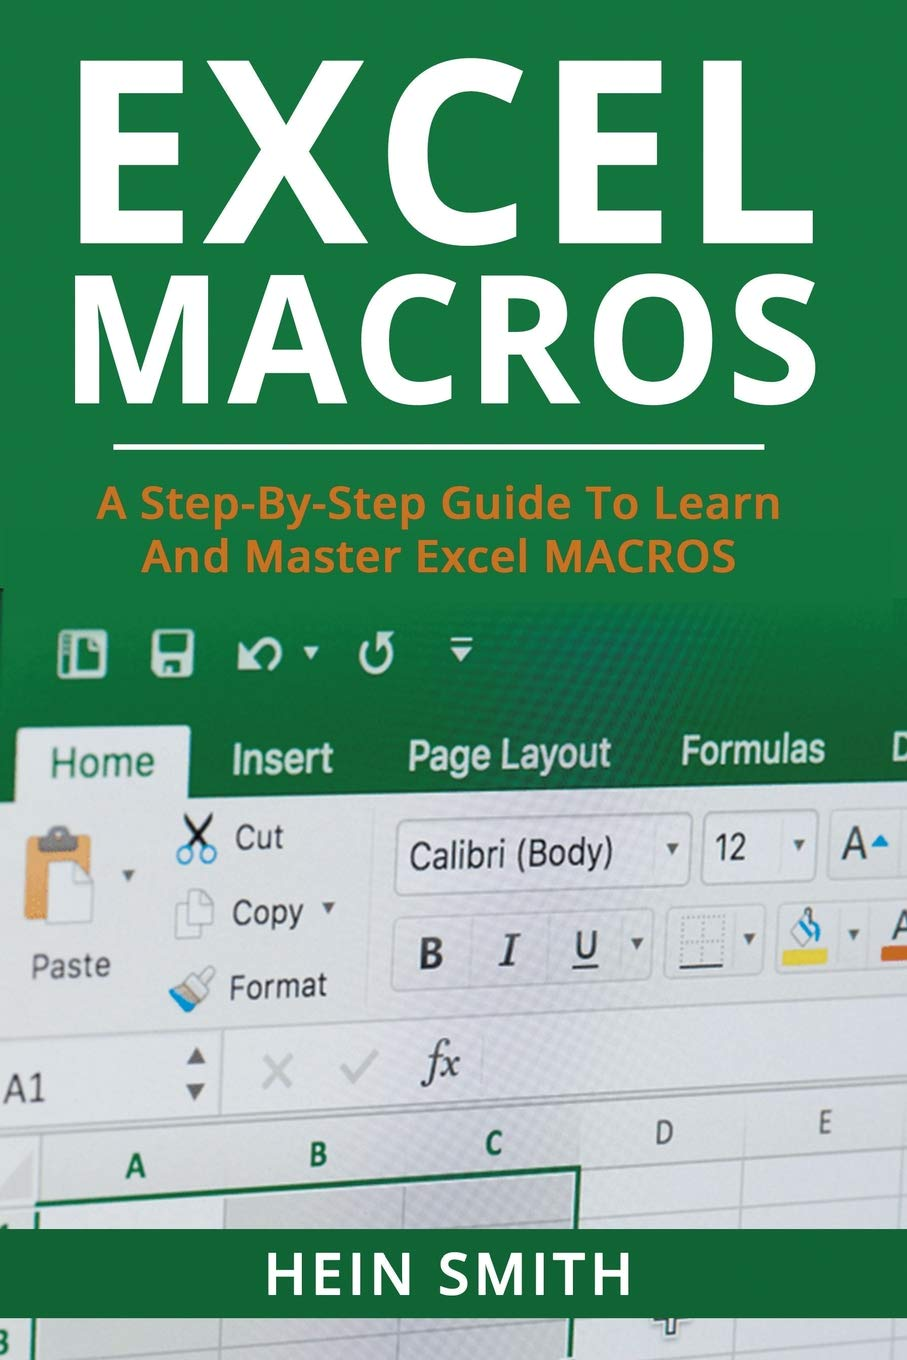 Excel Macros: A Step-by-Step Guide to Learn and Master Excel Macros Paperback – August 25, 2018 Mr Hein Smith 1726187926 Computer Applications Computer/Spreadsheets